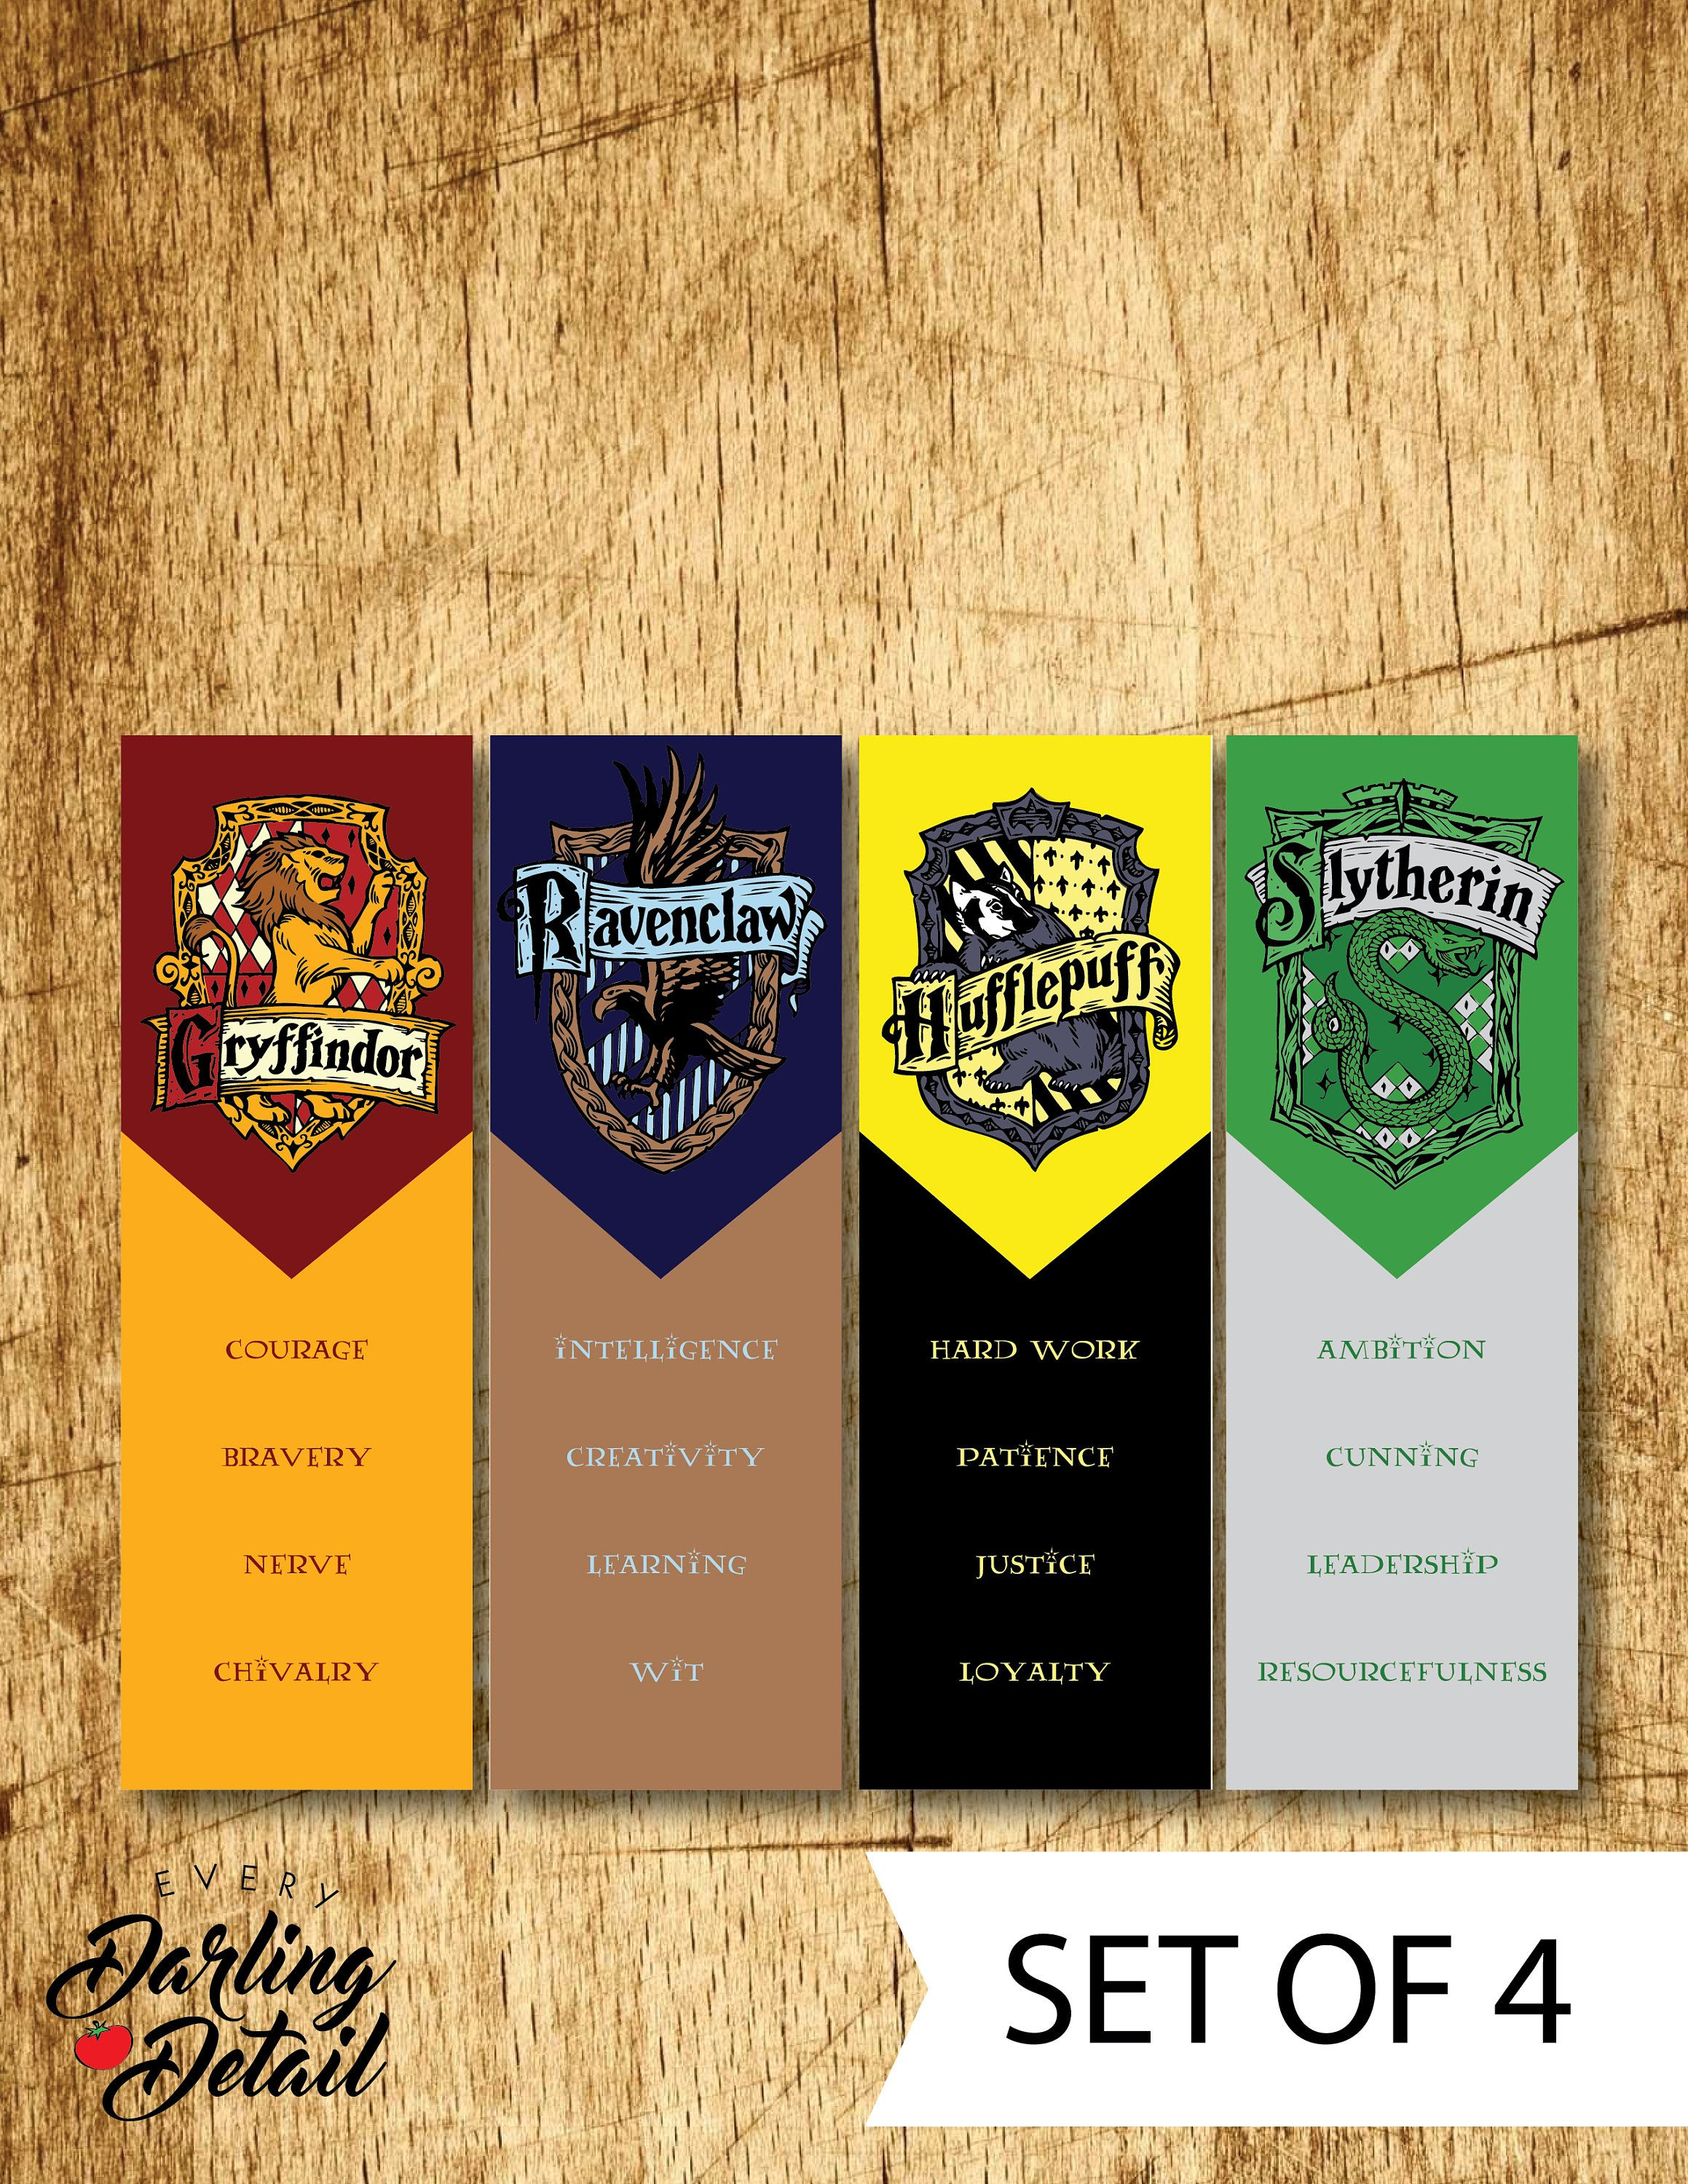 Vans x Harry Potter Line is Now Available! The Leaky